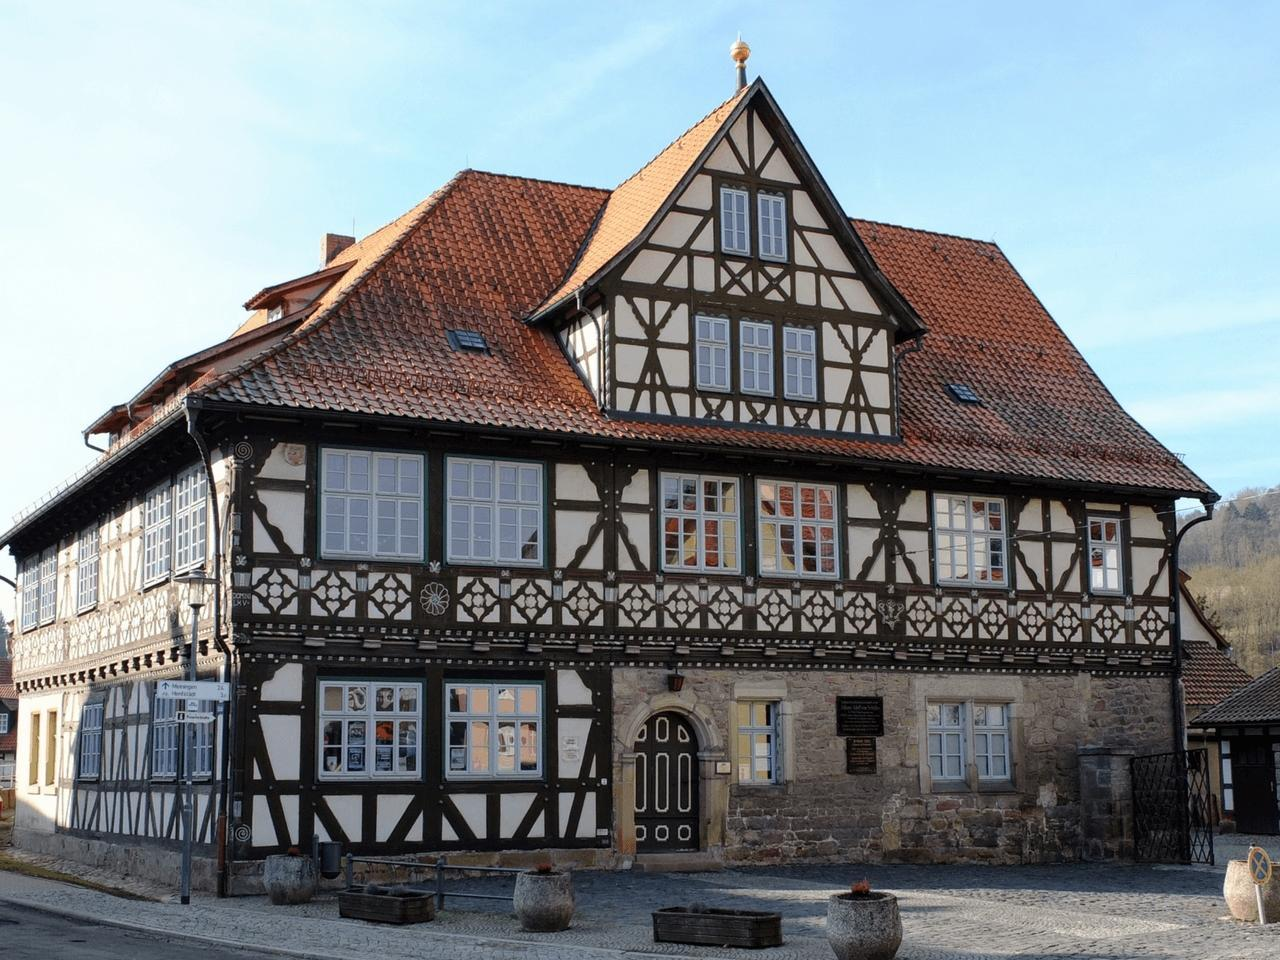 Holiday apartment Urlaub am Eingefallenen Berg (118001), Themar, Thuringian Forest, Thuringia, Germany, picture 11